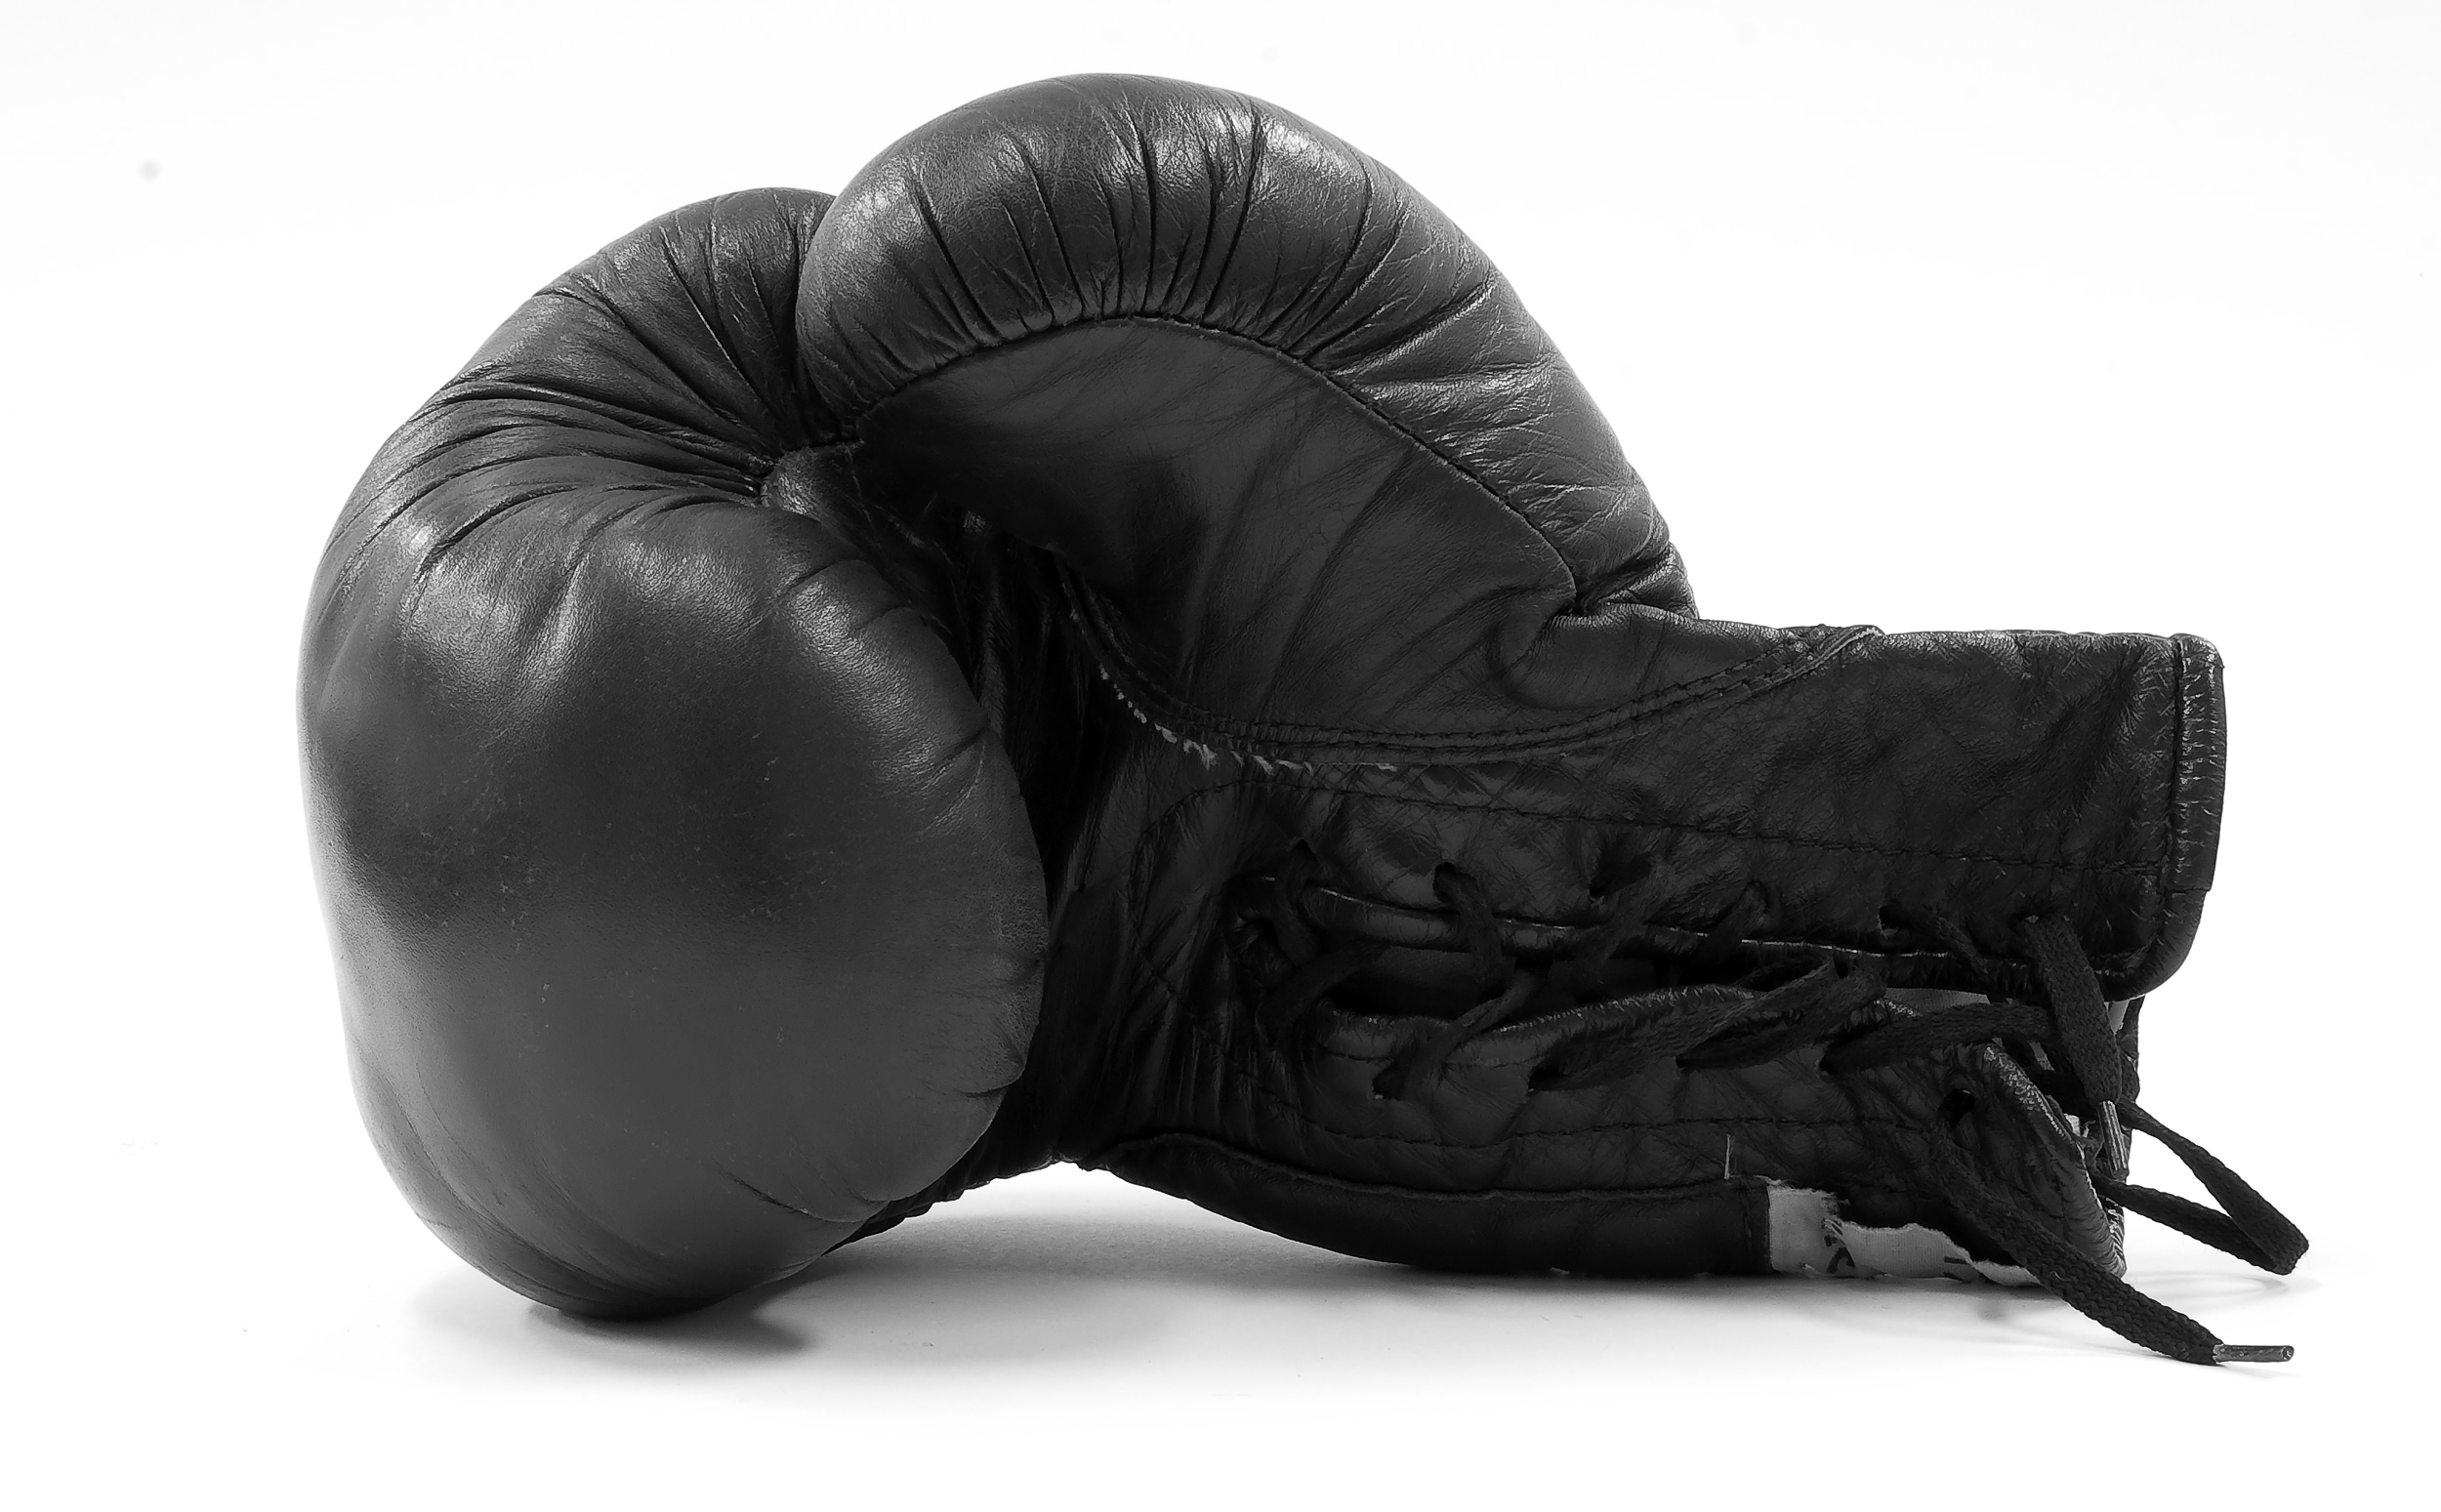 black-boxing-glove